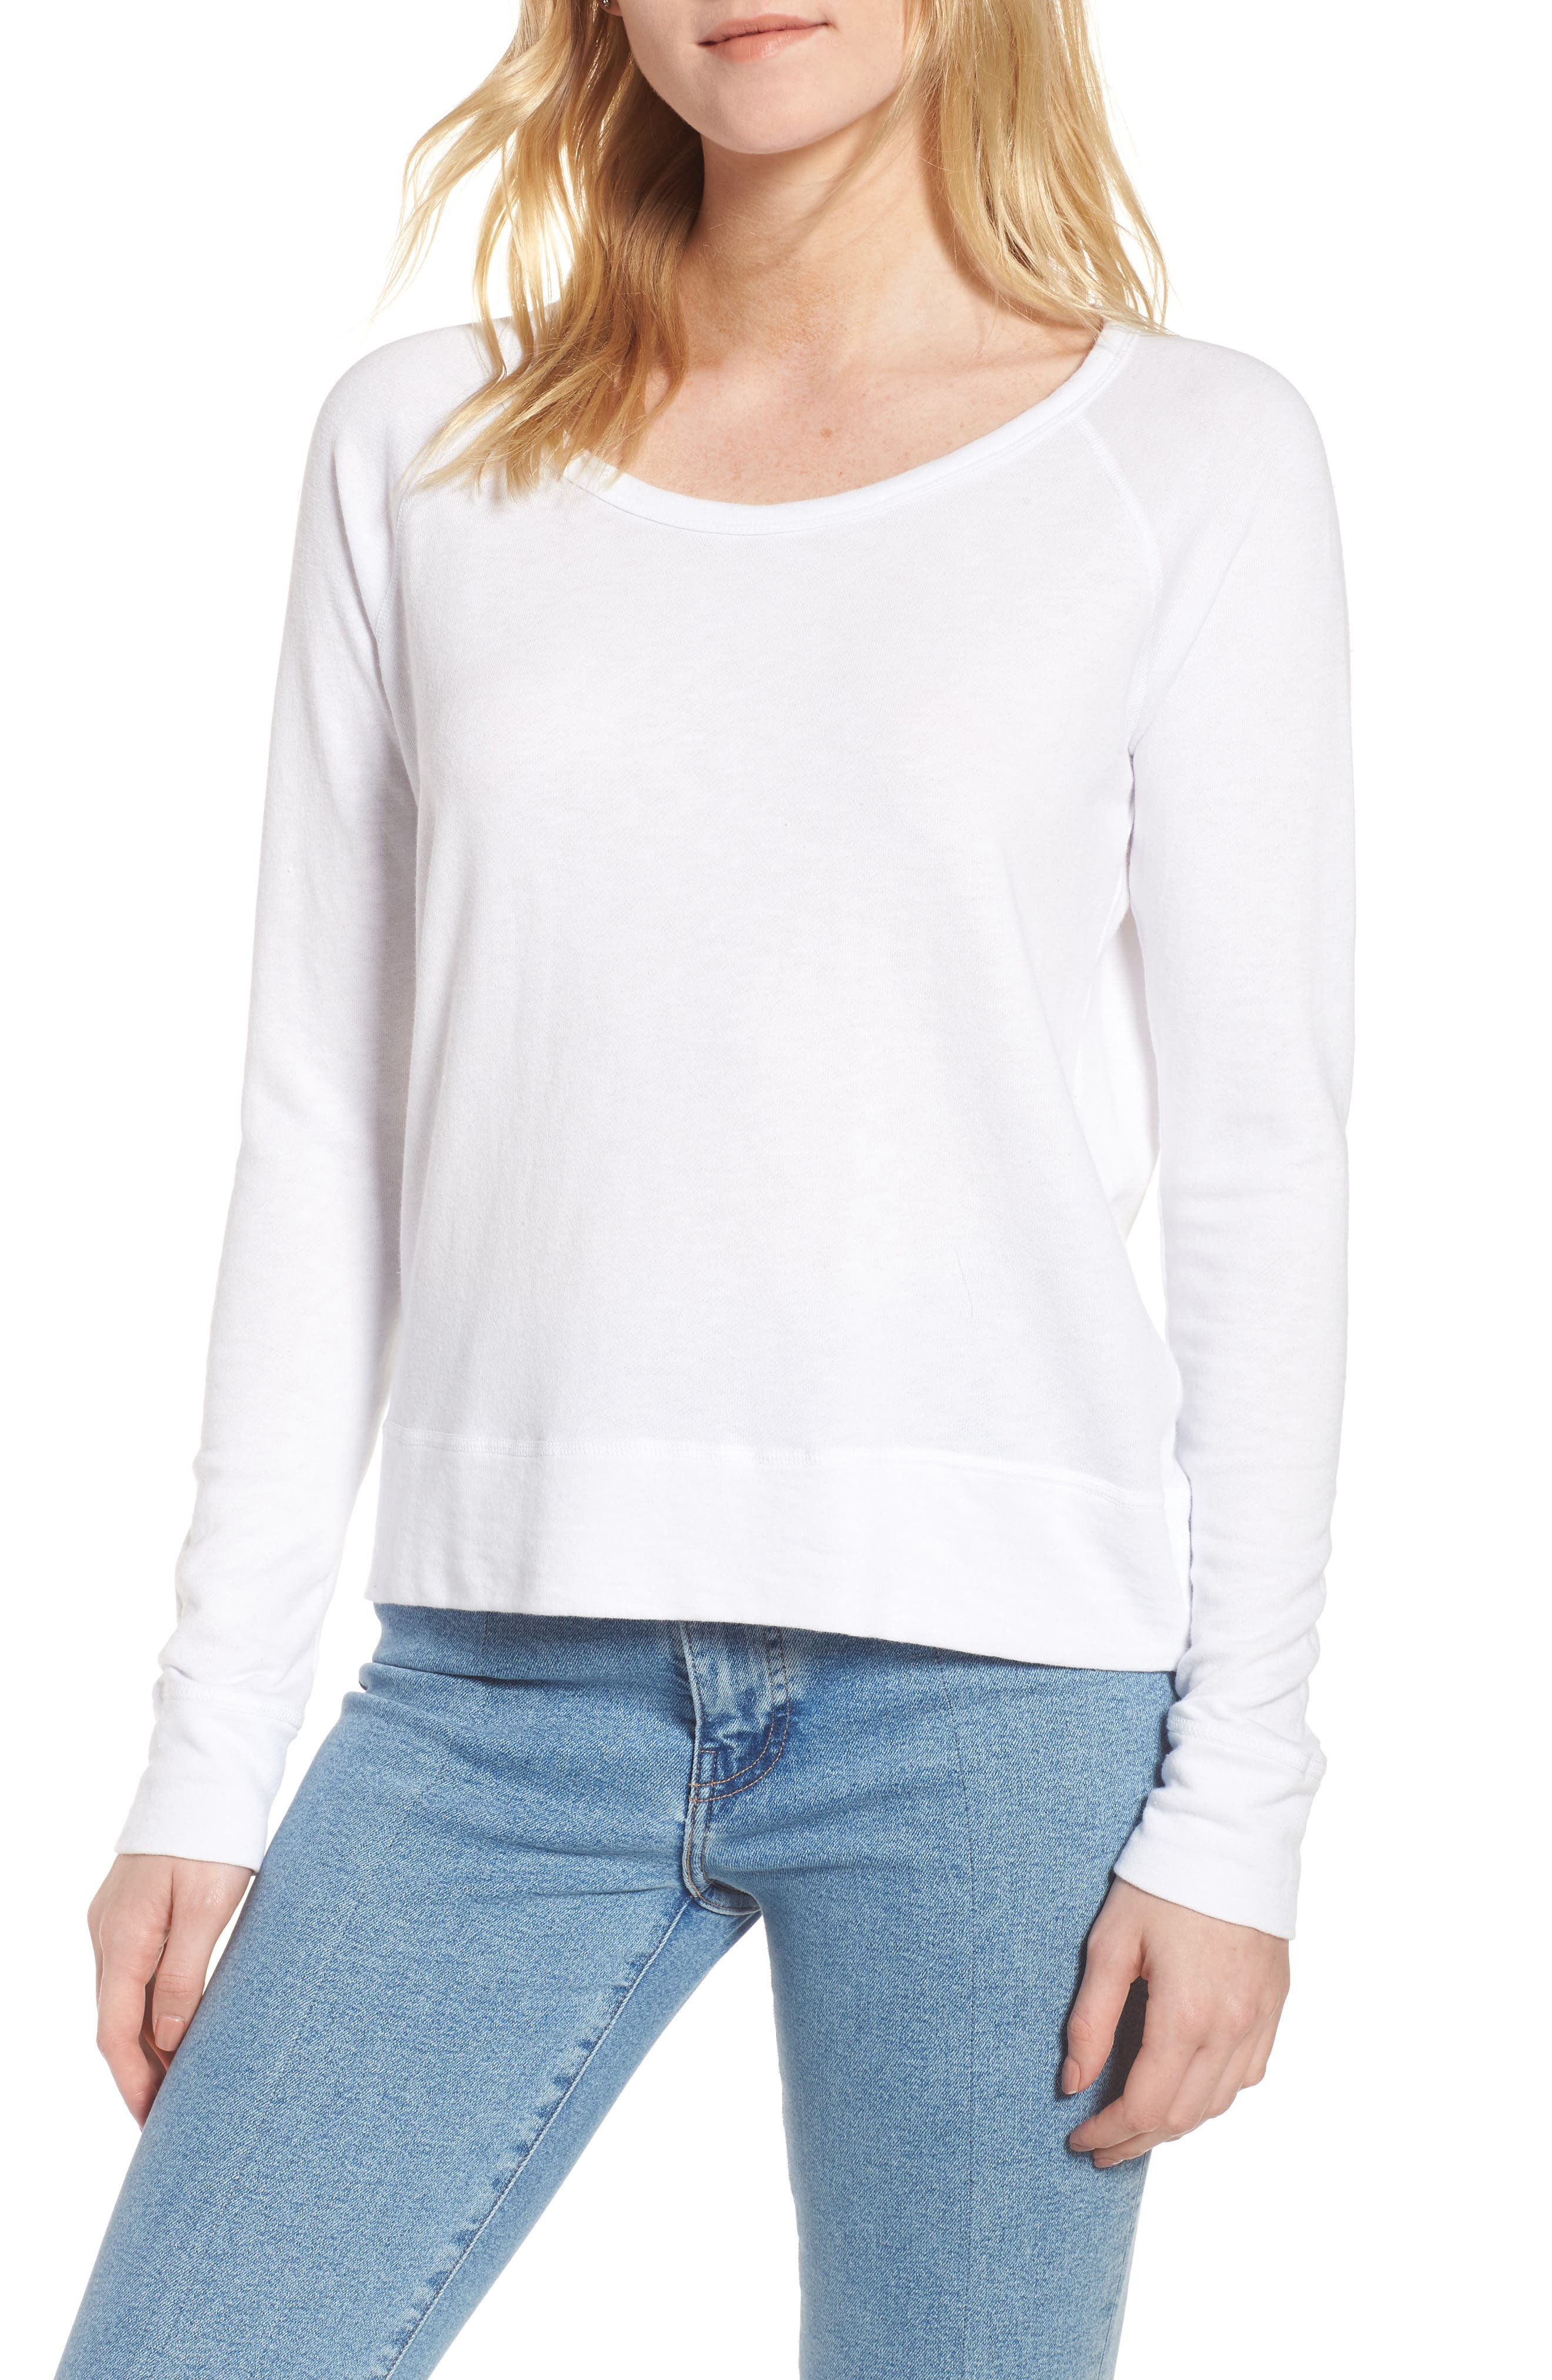 JAMES PERSE,                             Classic Raglan Sweatshirt,                             Main thumbnail 1, color,                             100